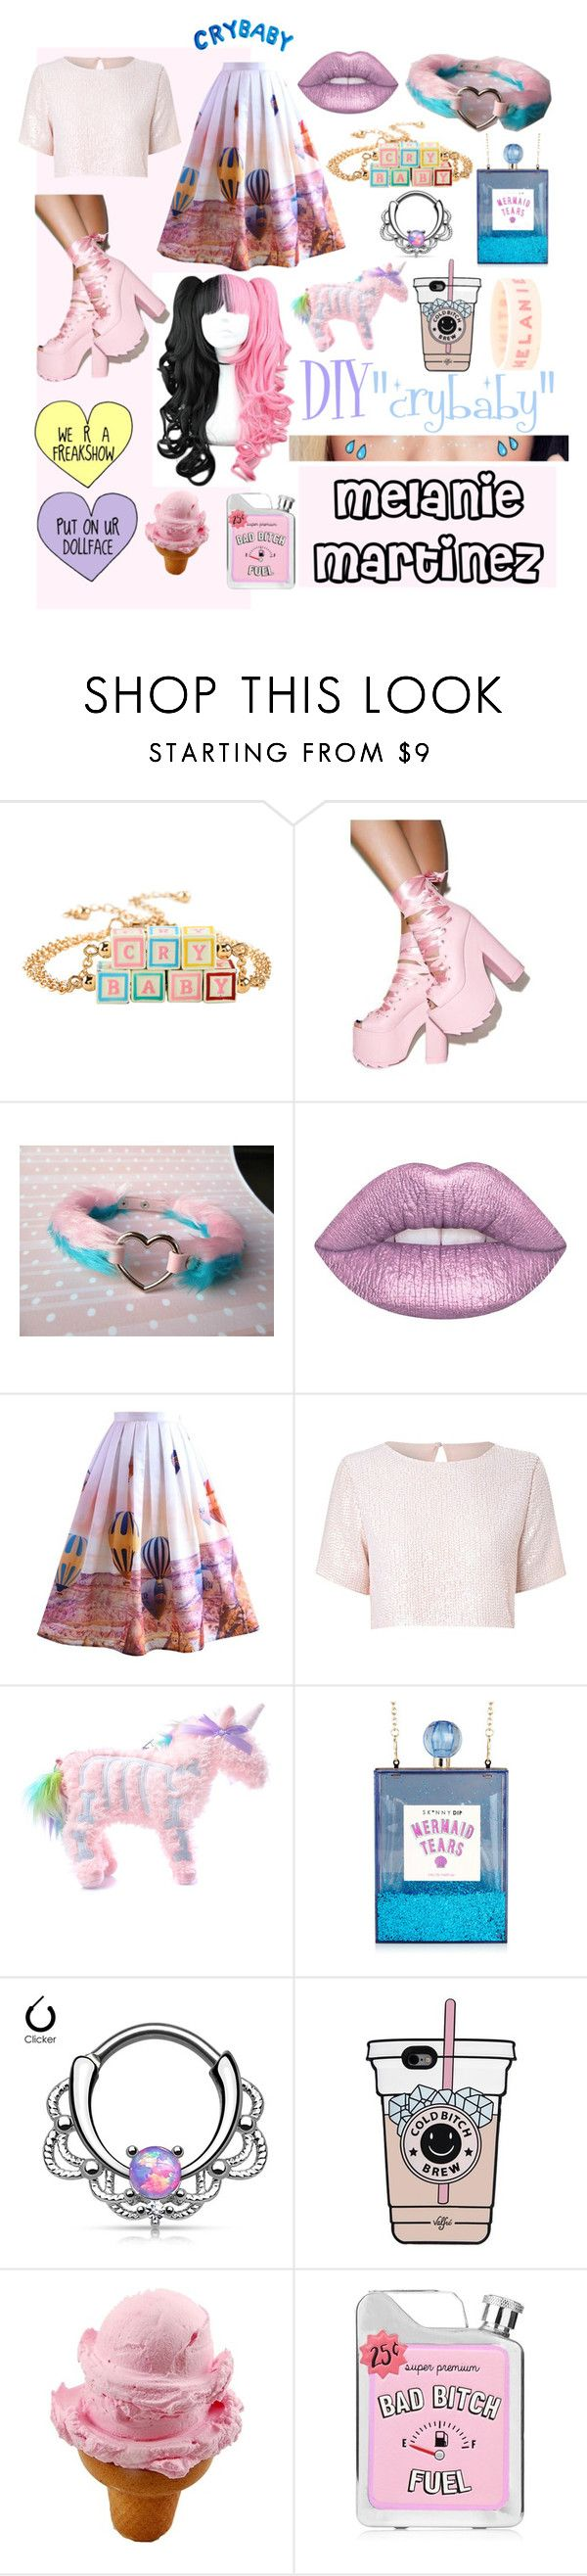 """""""DIY Halloween Costume Crybaby Melanie Martinez"""" by deisyvegaa ❤ liked on Polyvore featuring Y.R.U., Lime Crime, Chicwish, True Decadence, Current Mood, halloweencostume, Crybaby and DIYHalloween"""